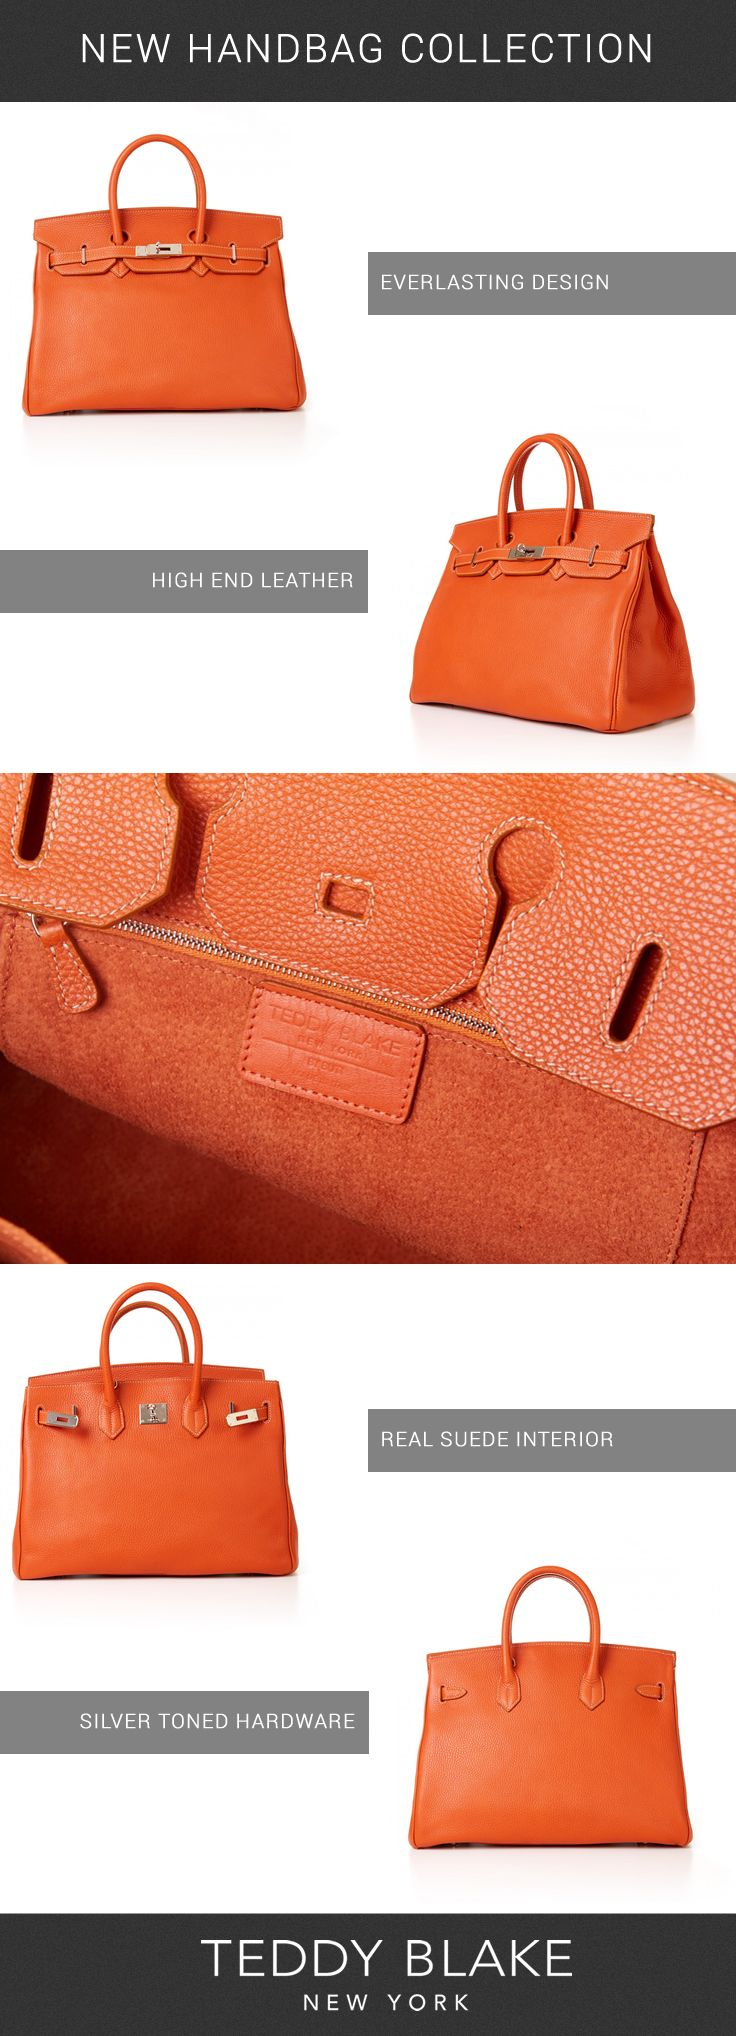 037ada2b1d7c Fall in love with the latest handbag collection from Teddy Blake New York! Featuring  stylish designs handcrafted in Italy from high end leather!